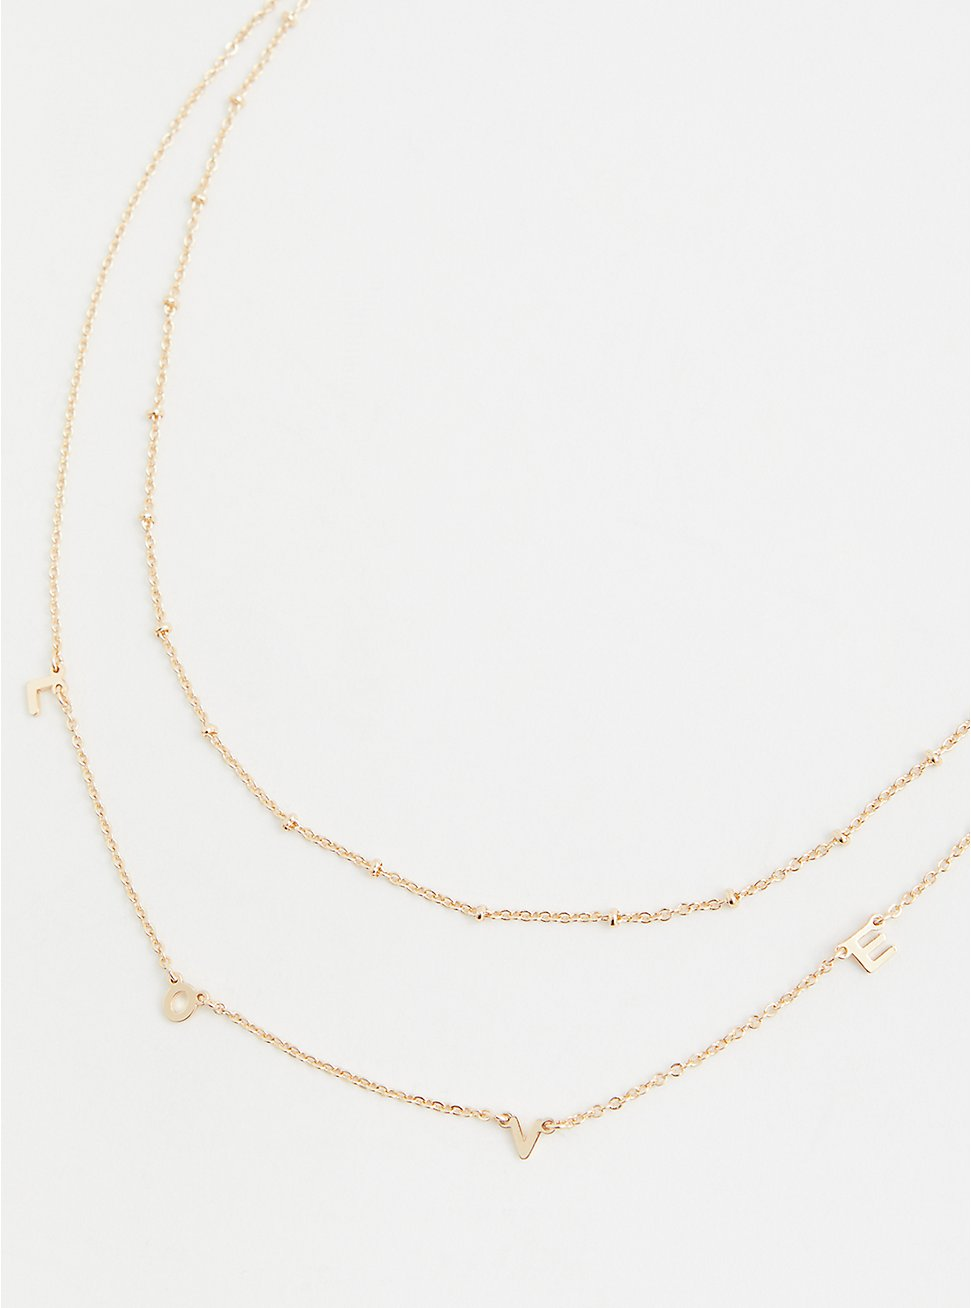 Gold-Tone Love Delicate Layered Necklace, , hi-res